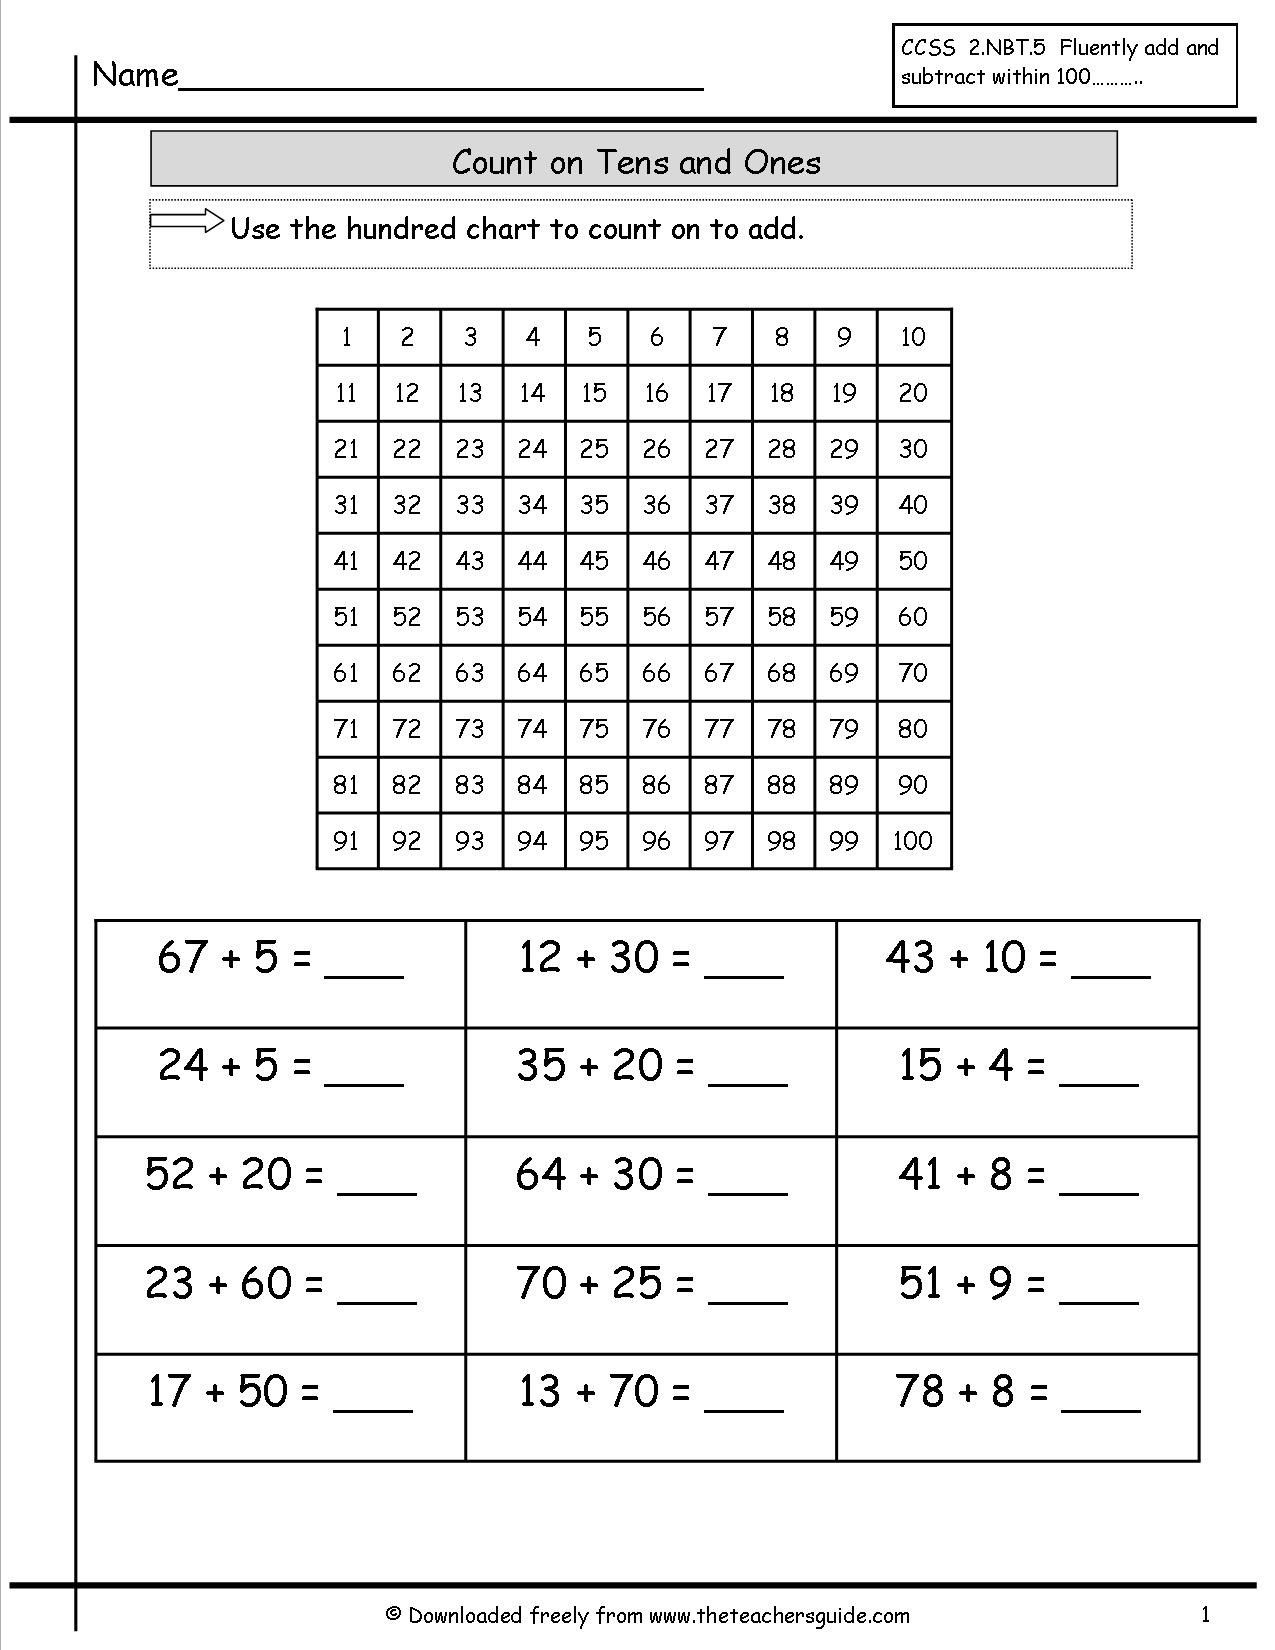 Adding Decimals Worksheet